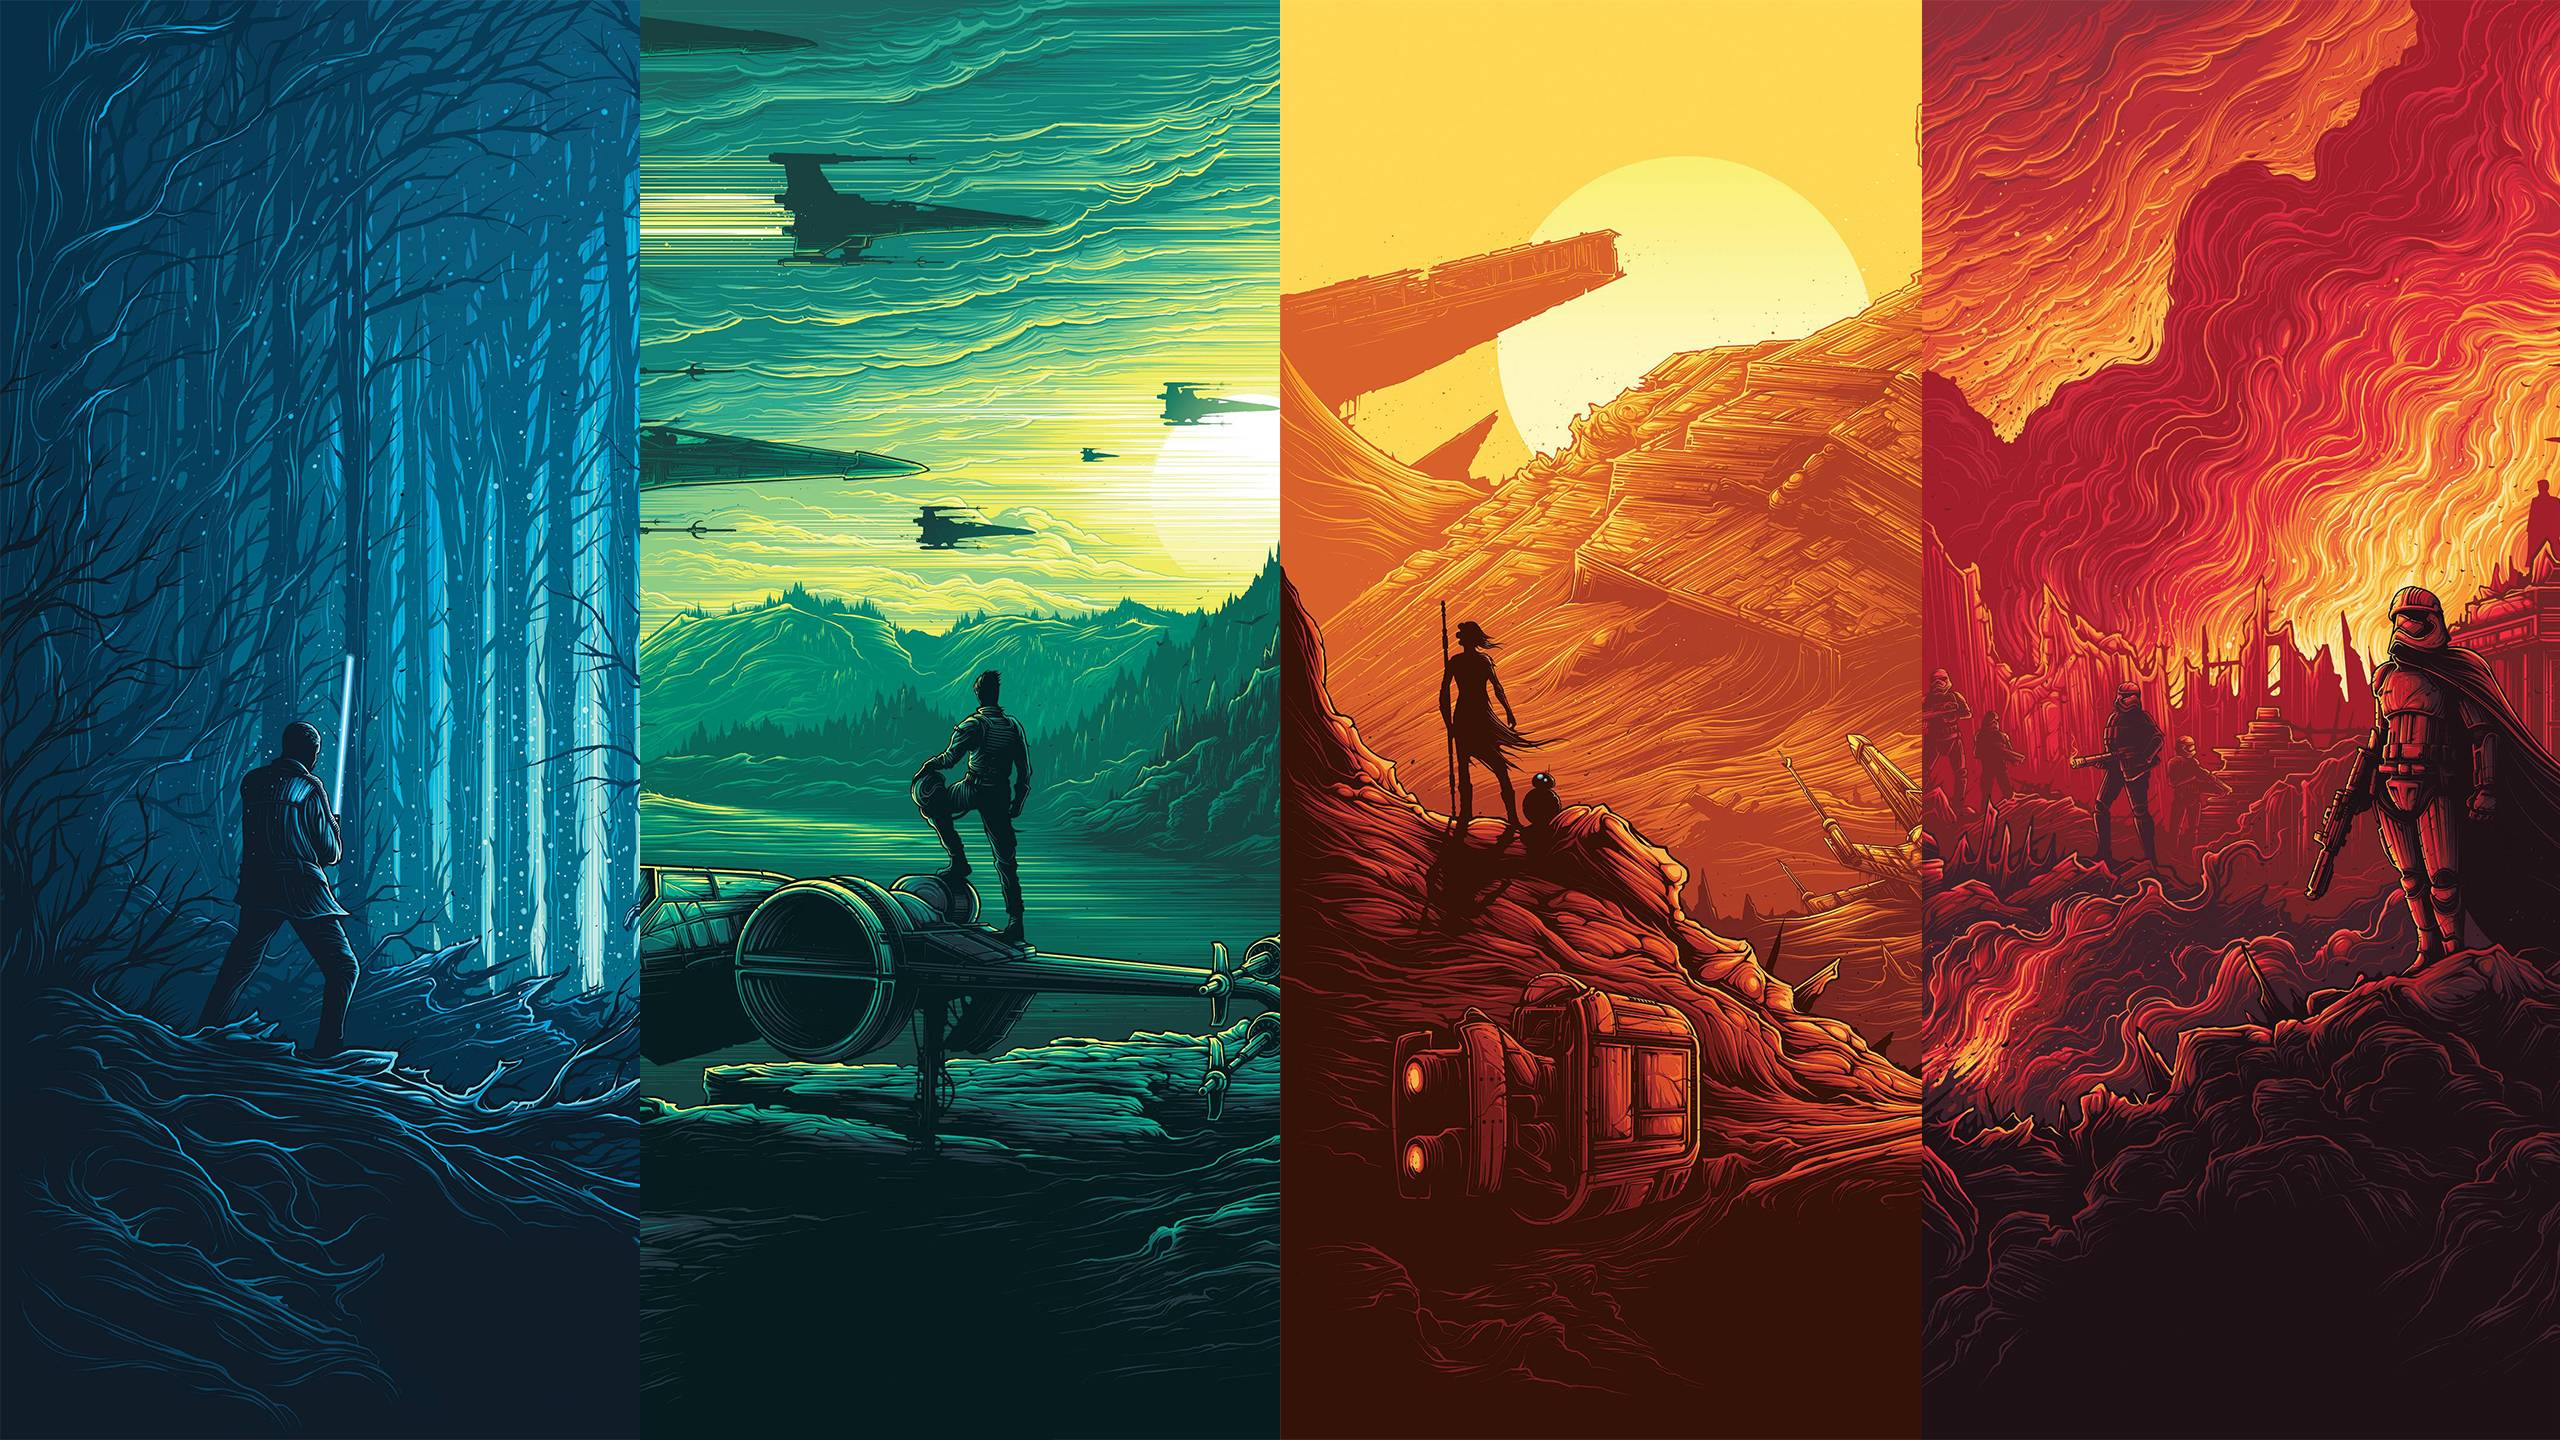 Starwars Star Wars The Force Awakens Painting 8774 Hd Wallpaper Backgrounds Download